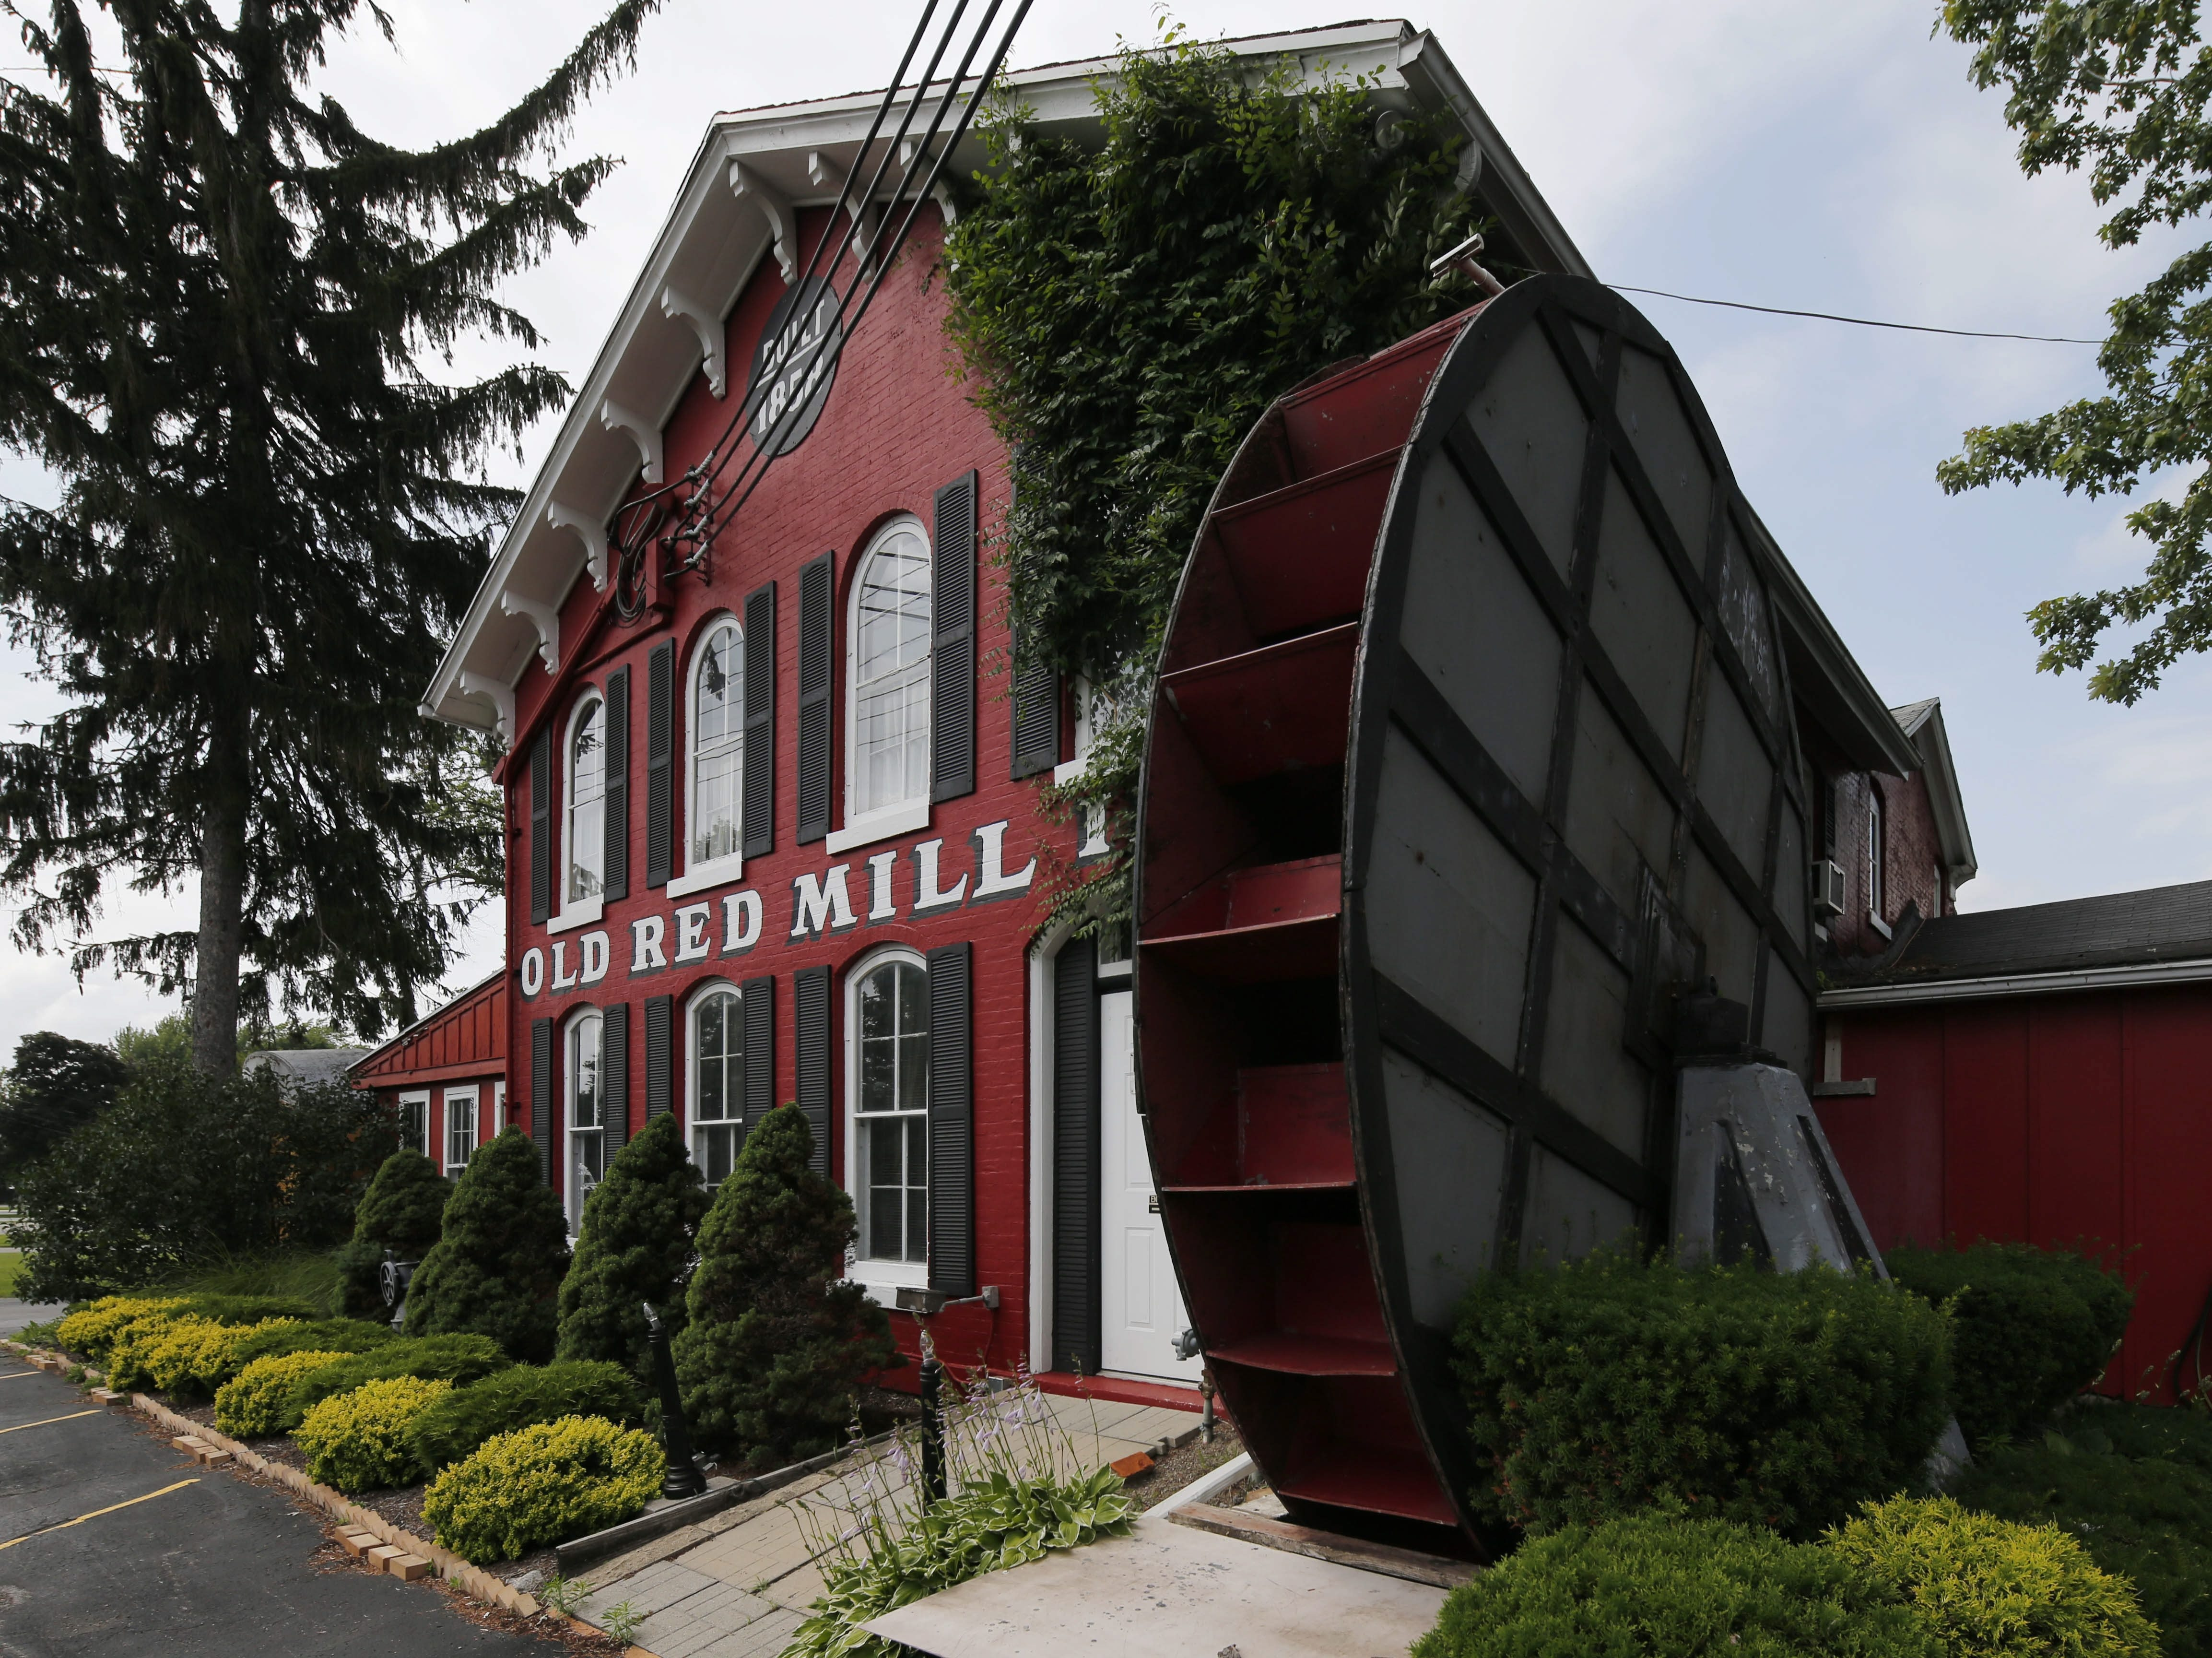 Thecontents of the Old Red Mill Inn on Main Street in Clarence will be auctioned Aug. 6.  (Derek Gee/Buffalo News))